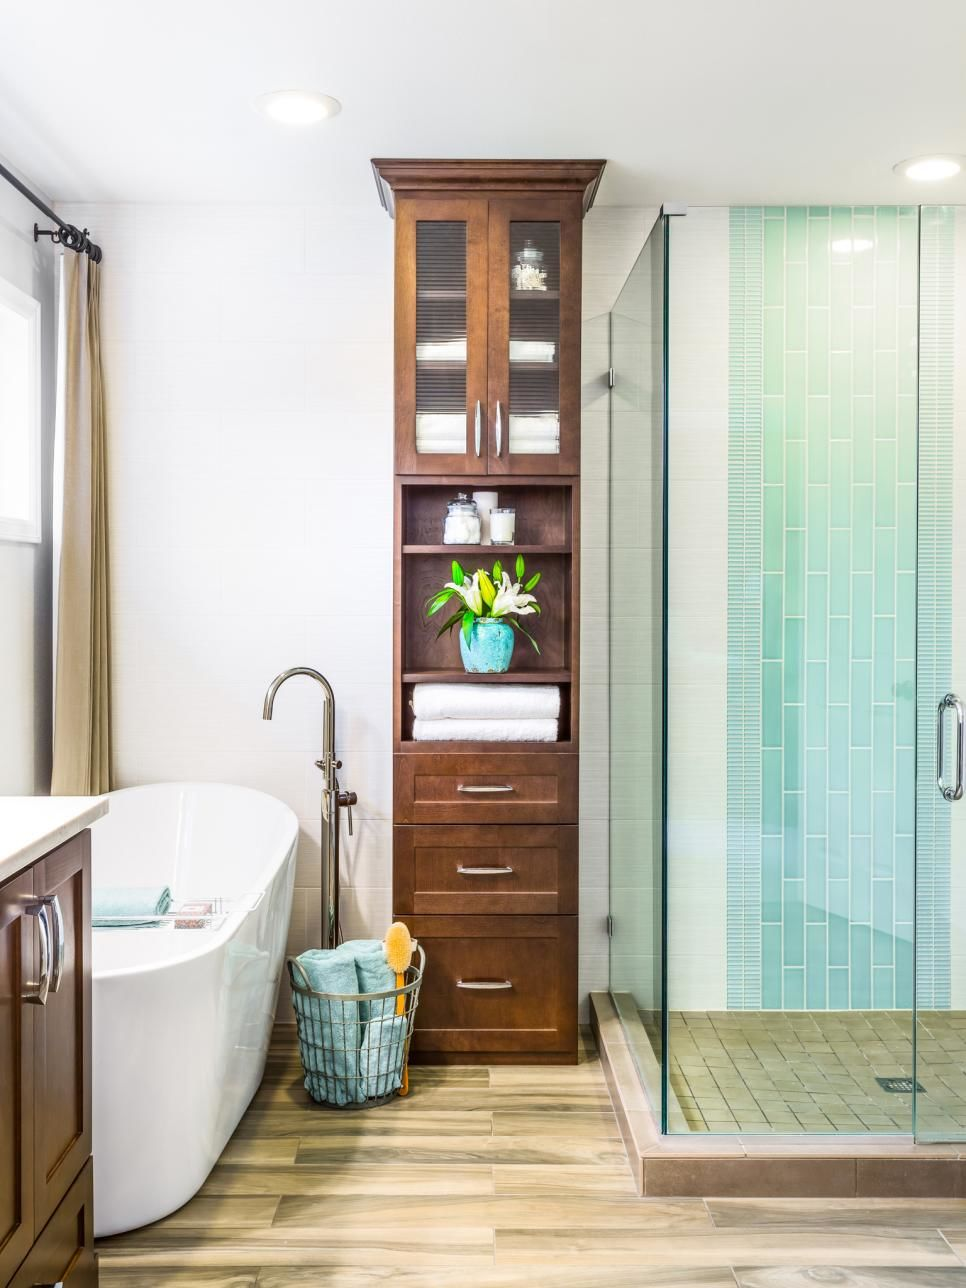 fascinating storage ideas for small bathrooms décor-Cute Storage Ideas for Small Bathrooms Decoration